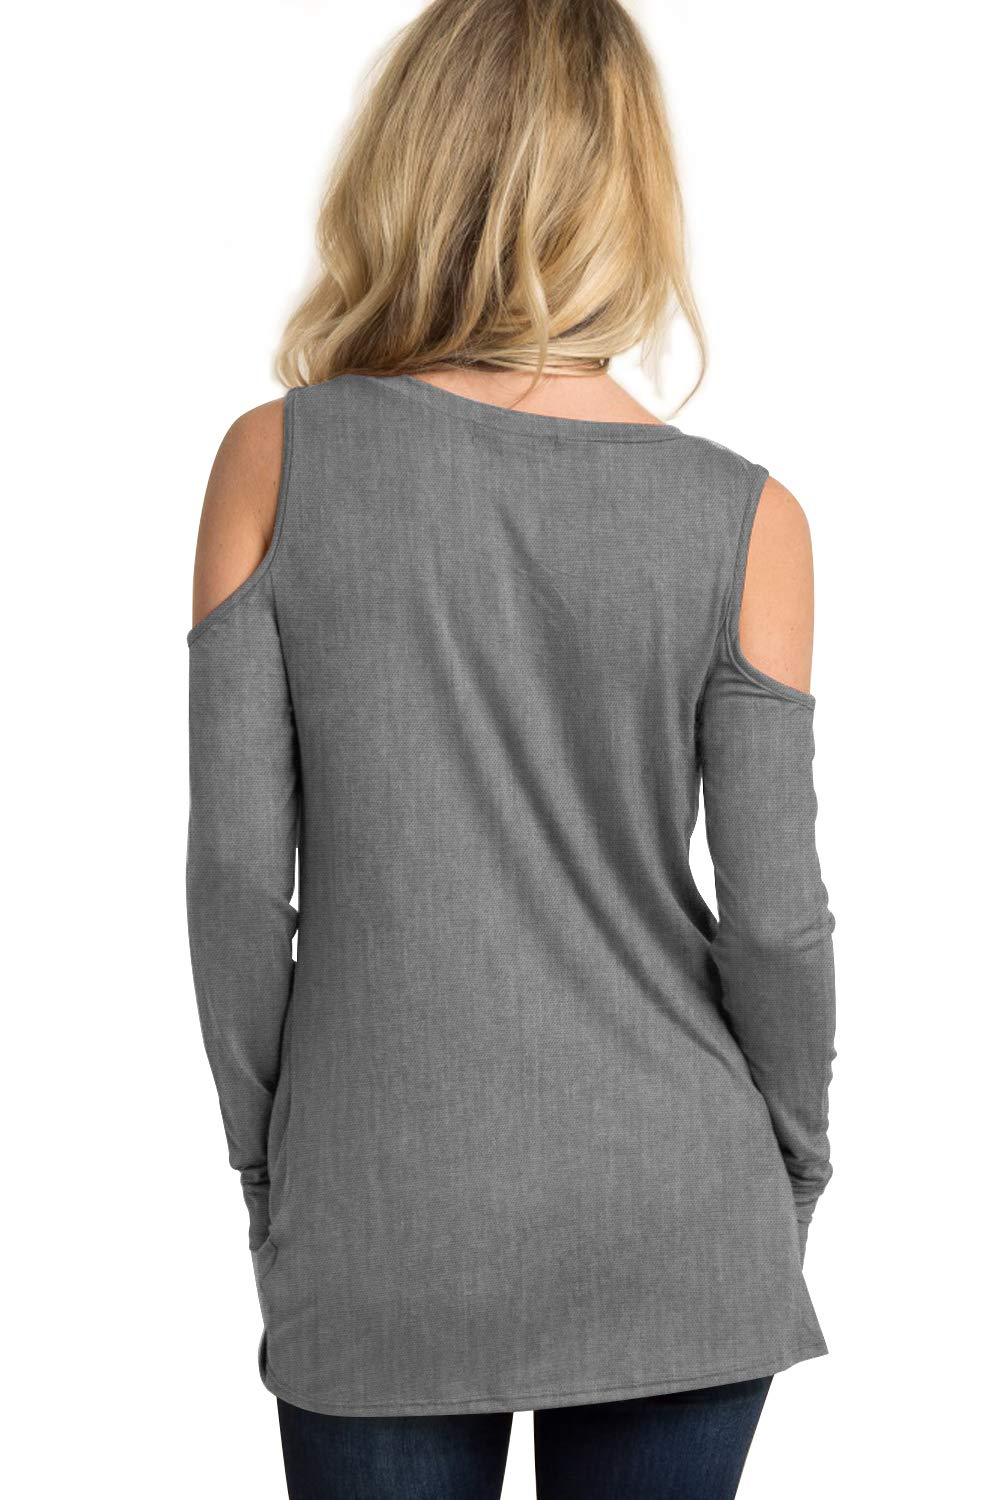 Eanklosco Women's Long Sleeve Cold Shoulder Cut Out T Shirts Casual Knot Tunic Tops (Grey, XL)